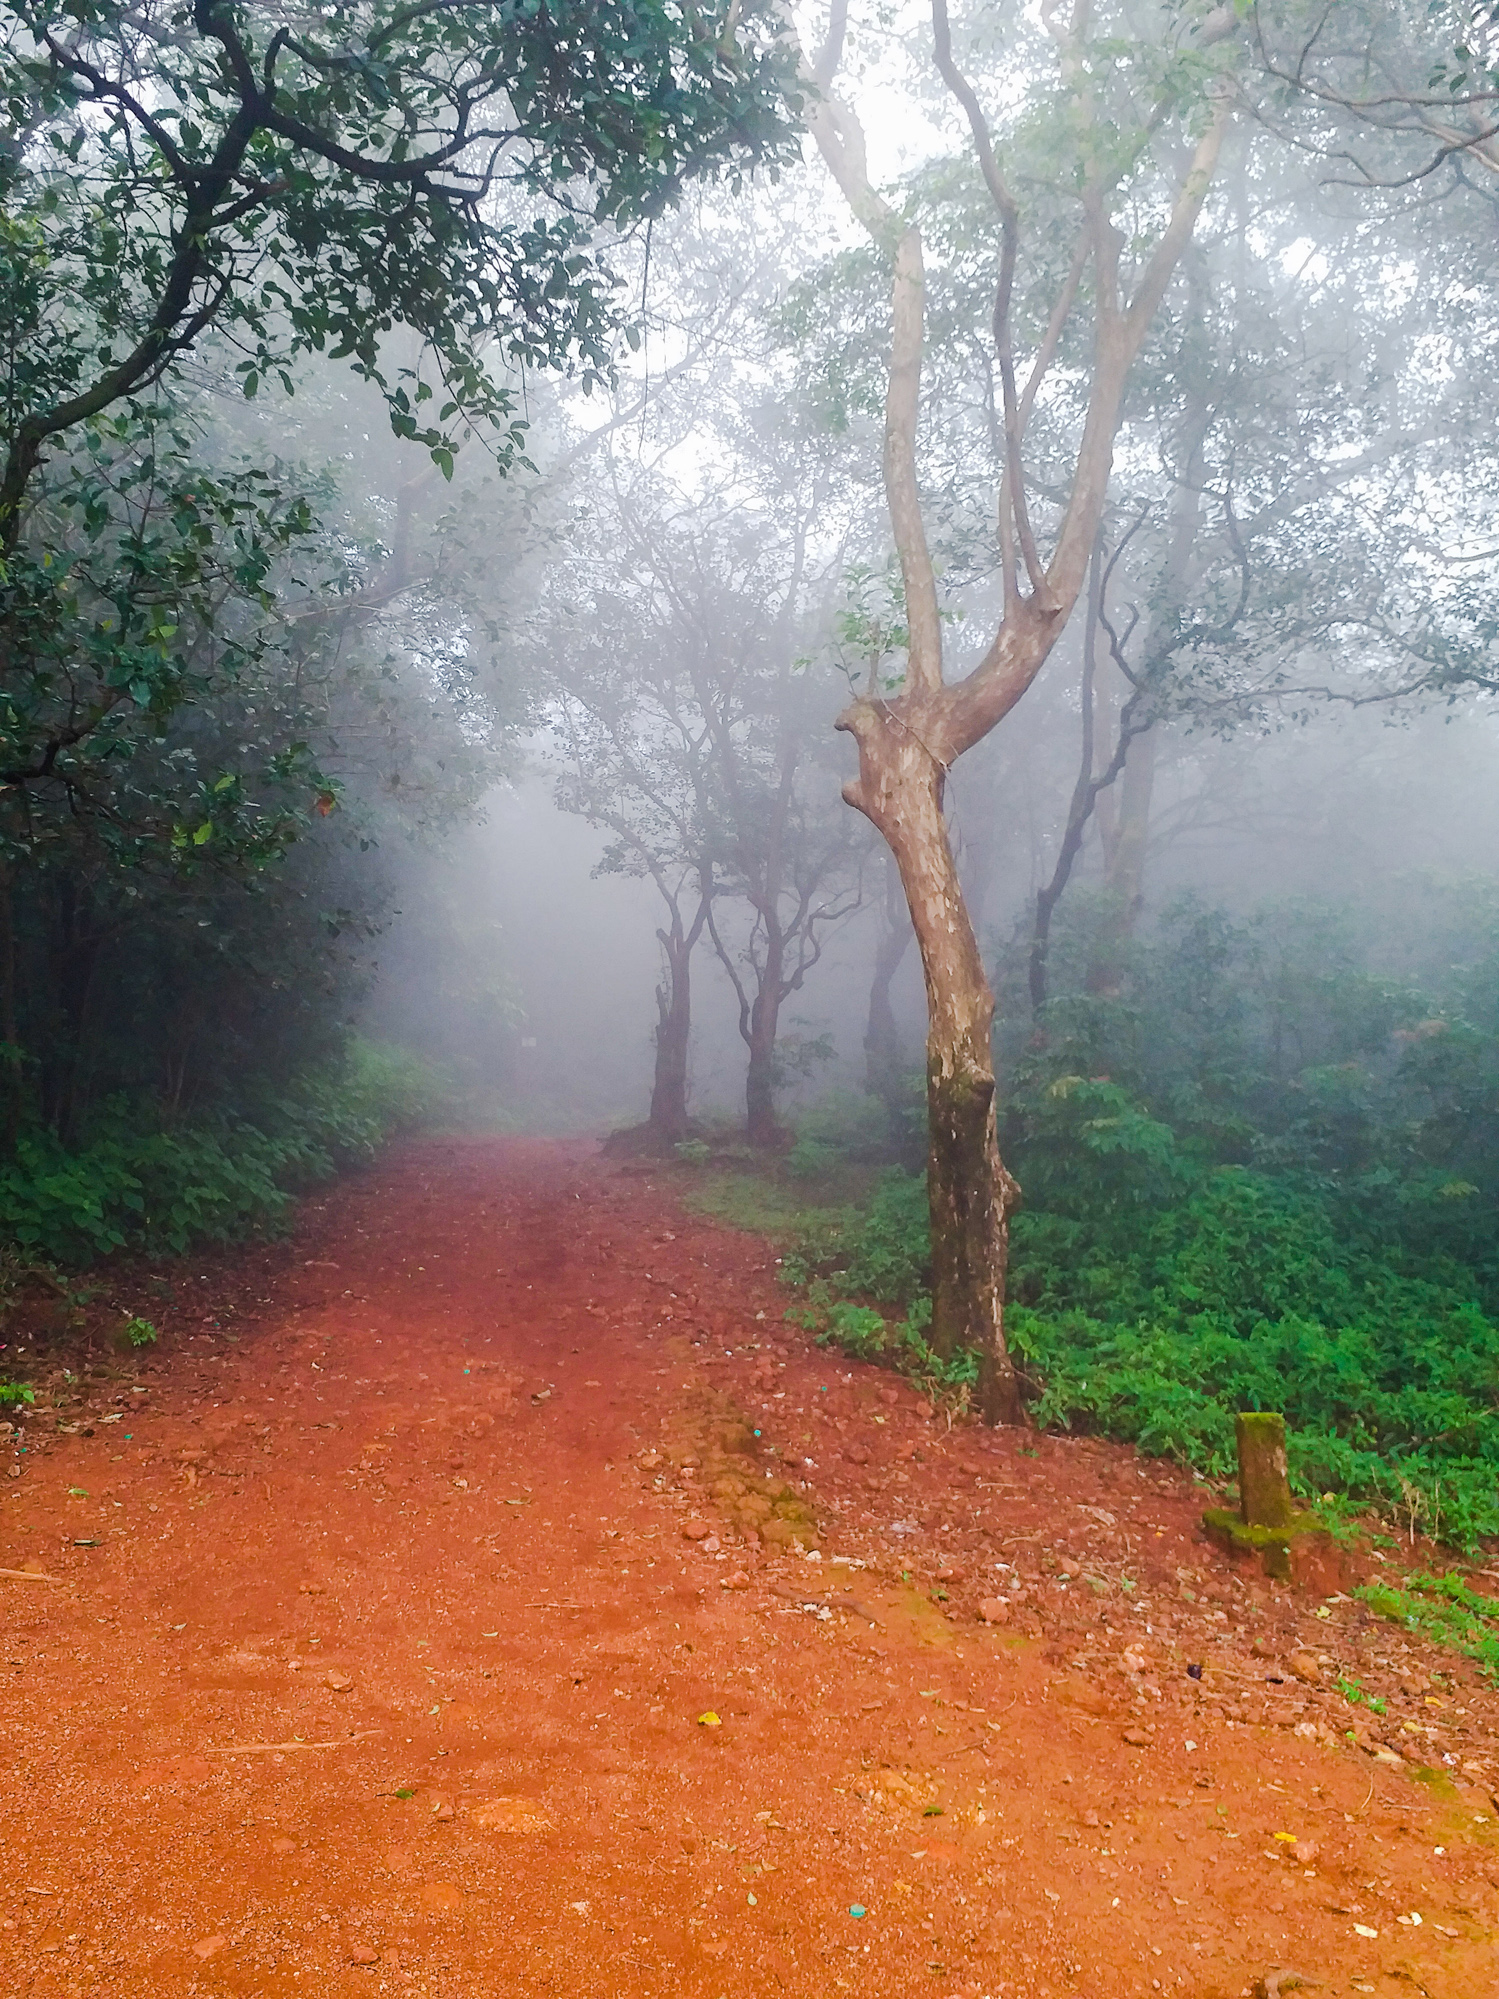 At Matheran, when dense fog covered the roads among the trees